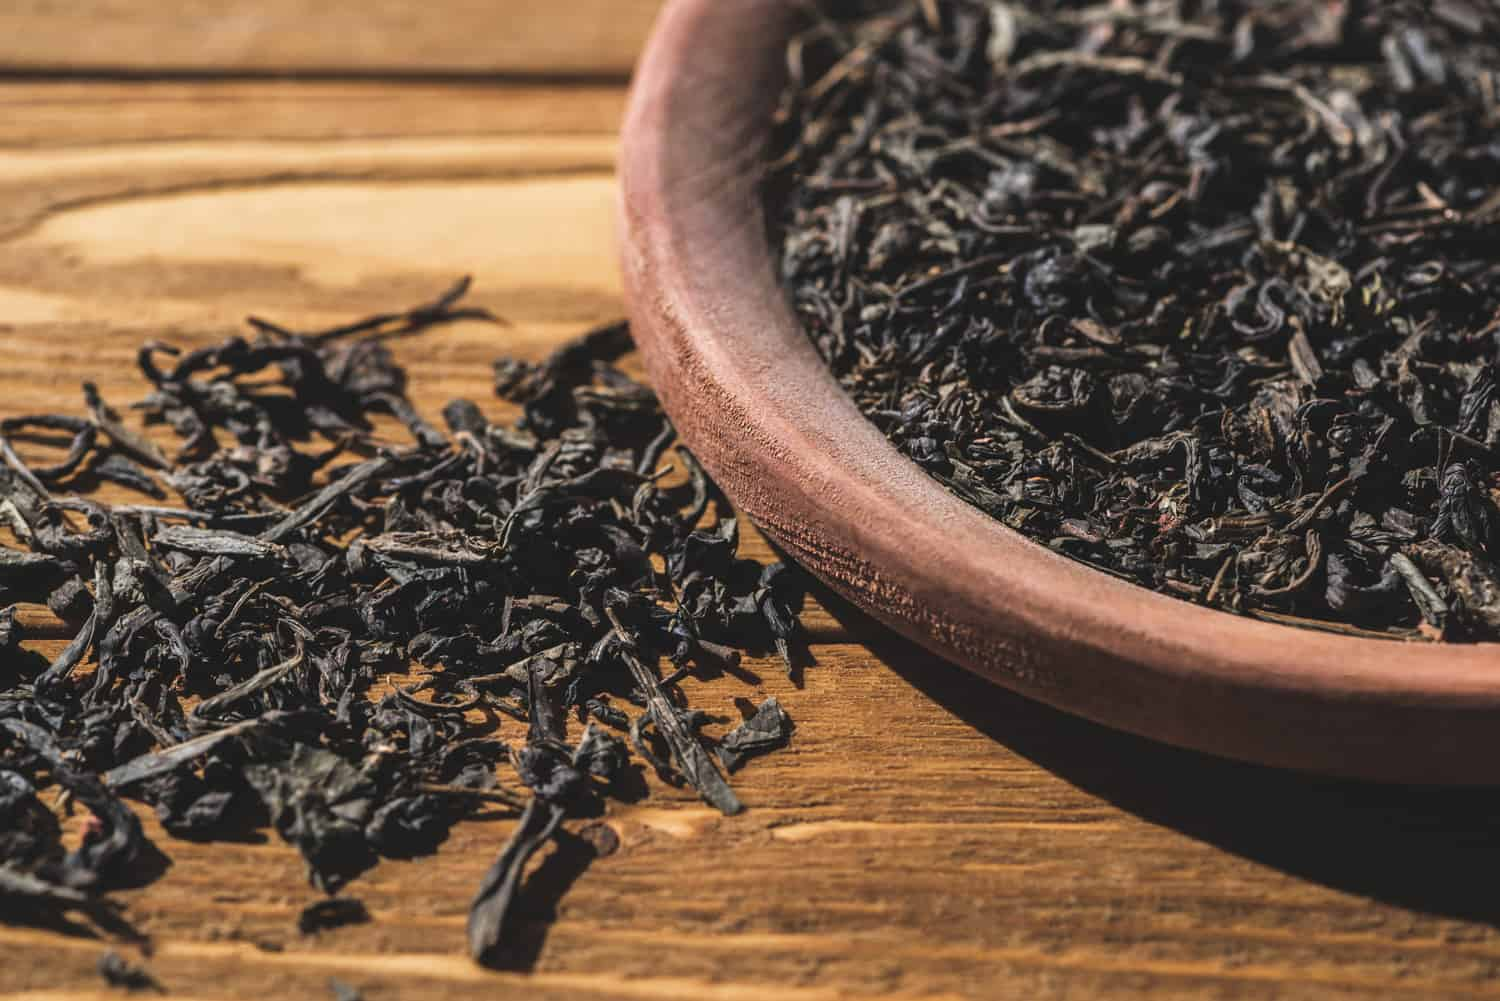 Dried black tea on wooden table in kitchen